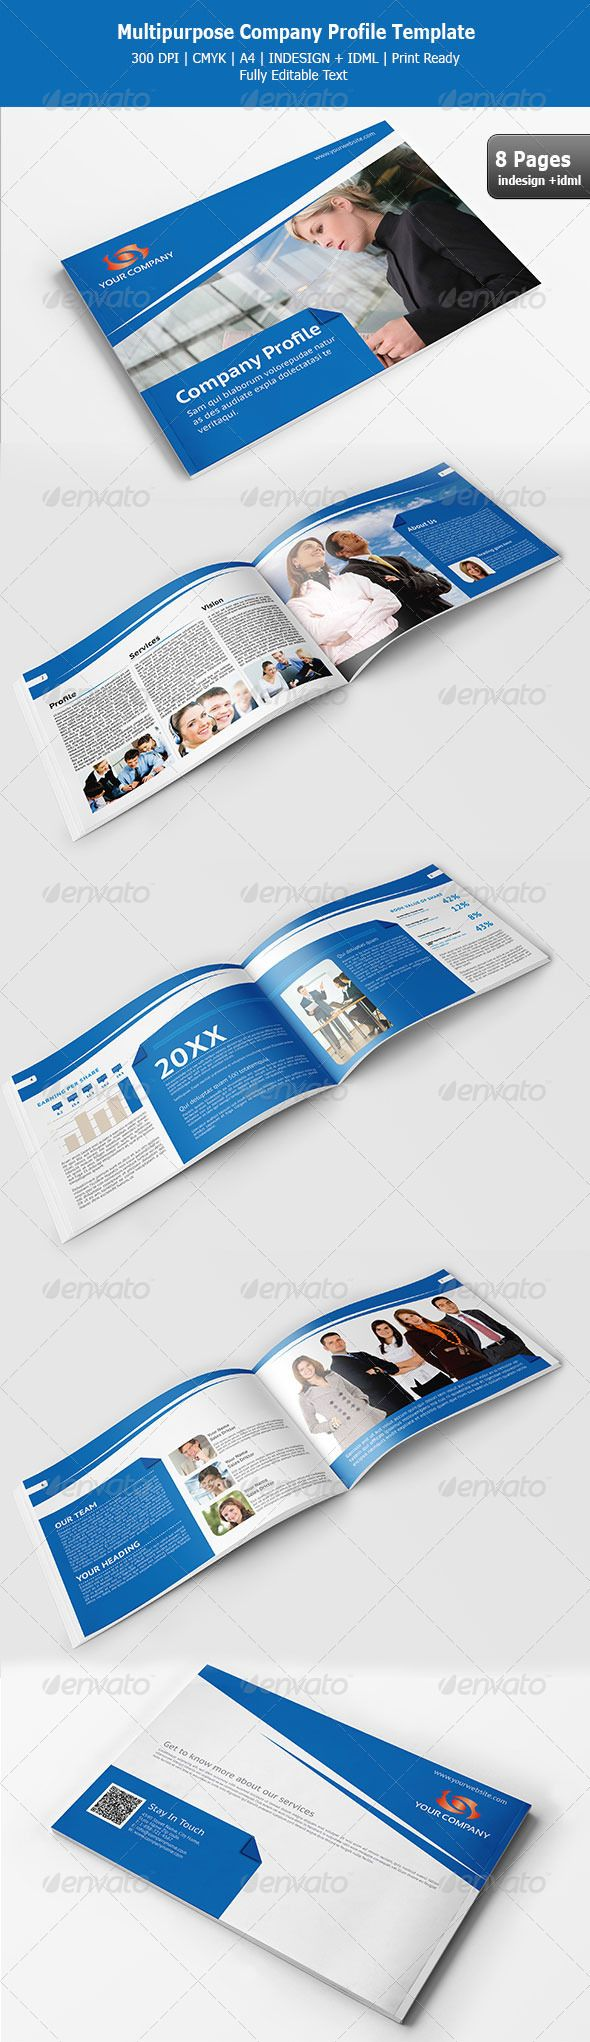 31 best images about Company Profile Templates – Small Company Profile Format